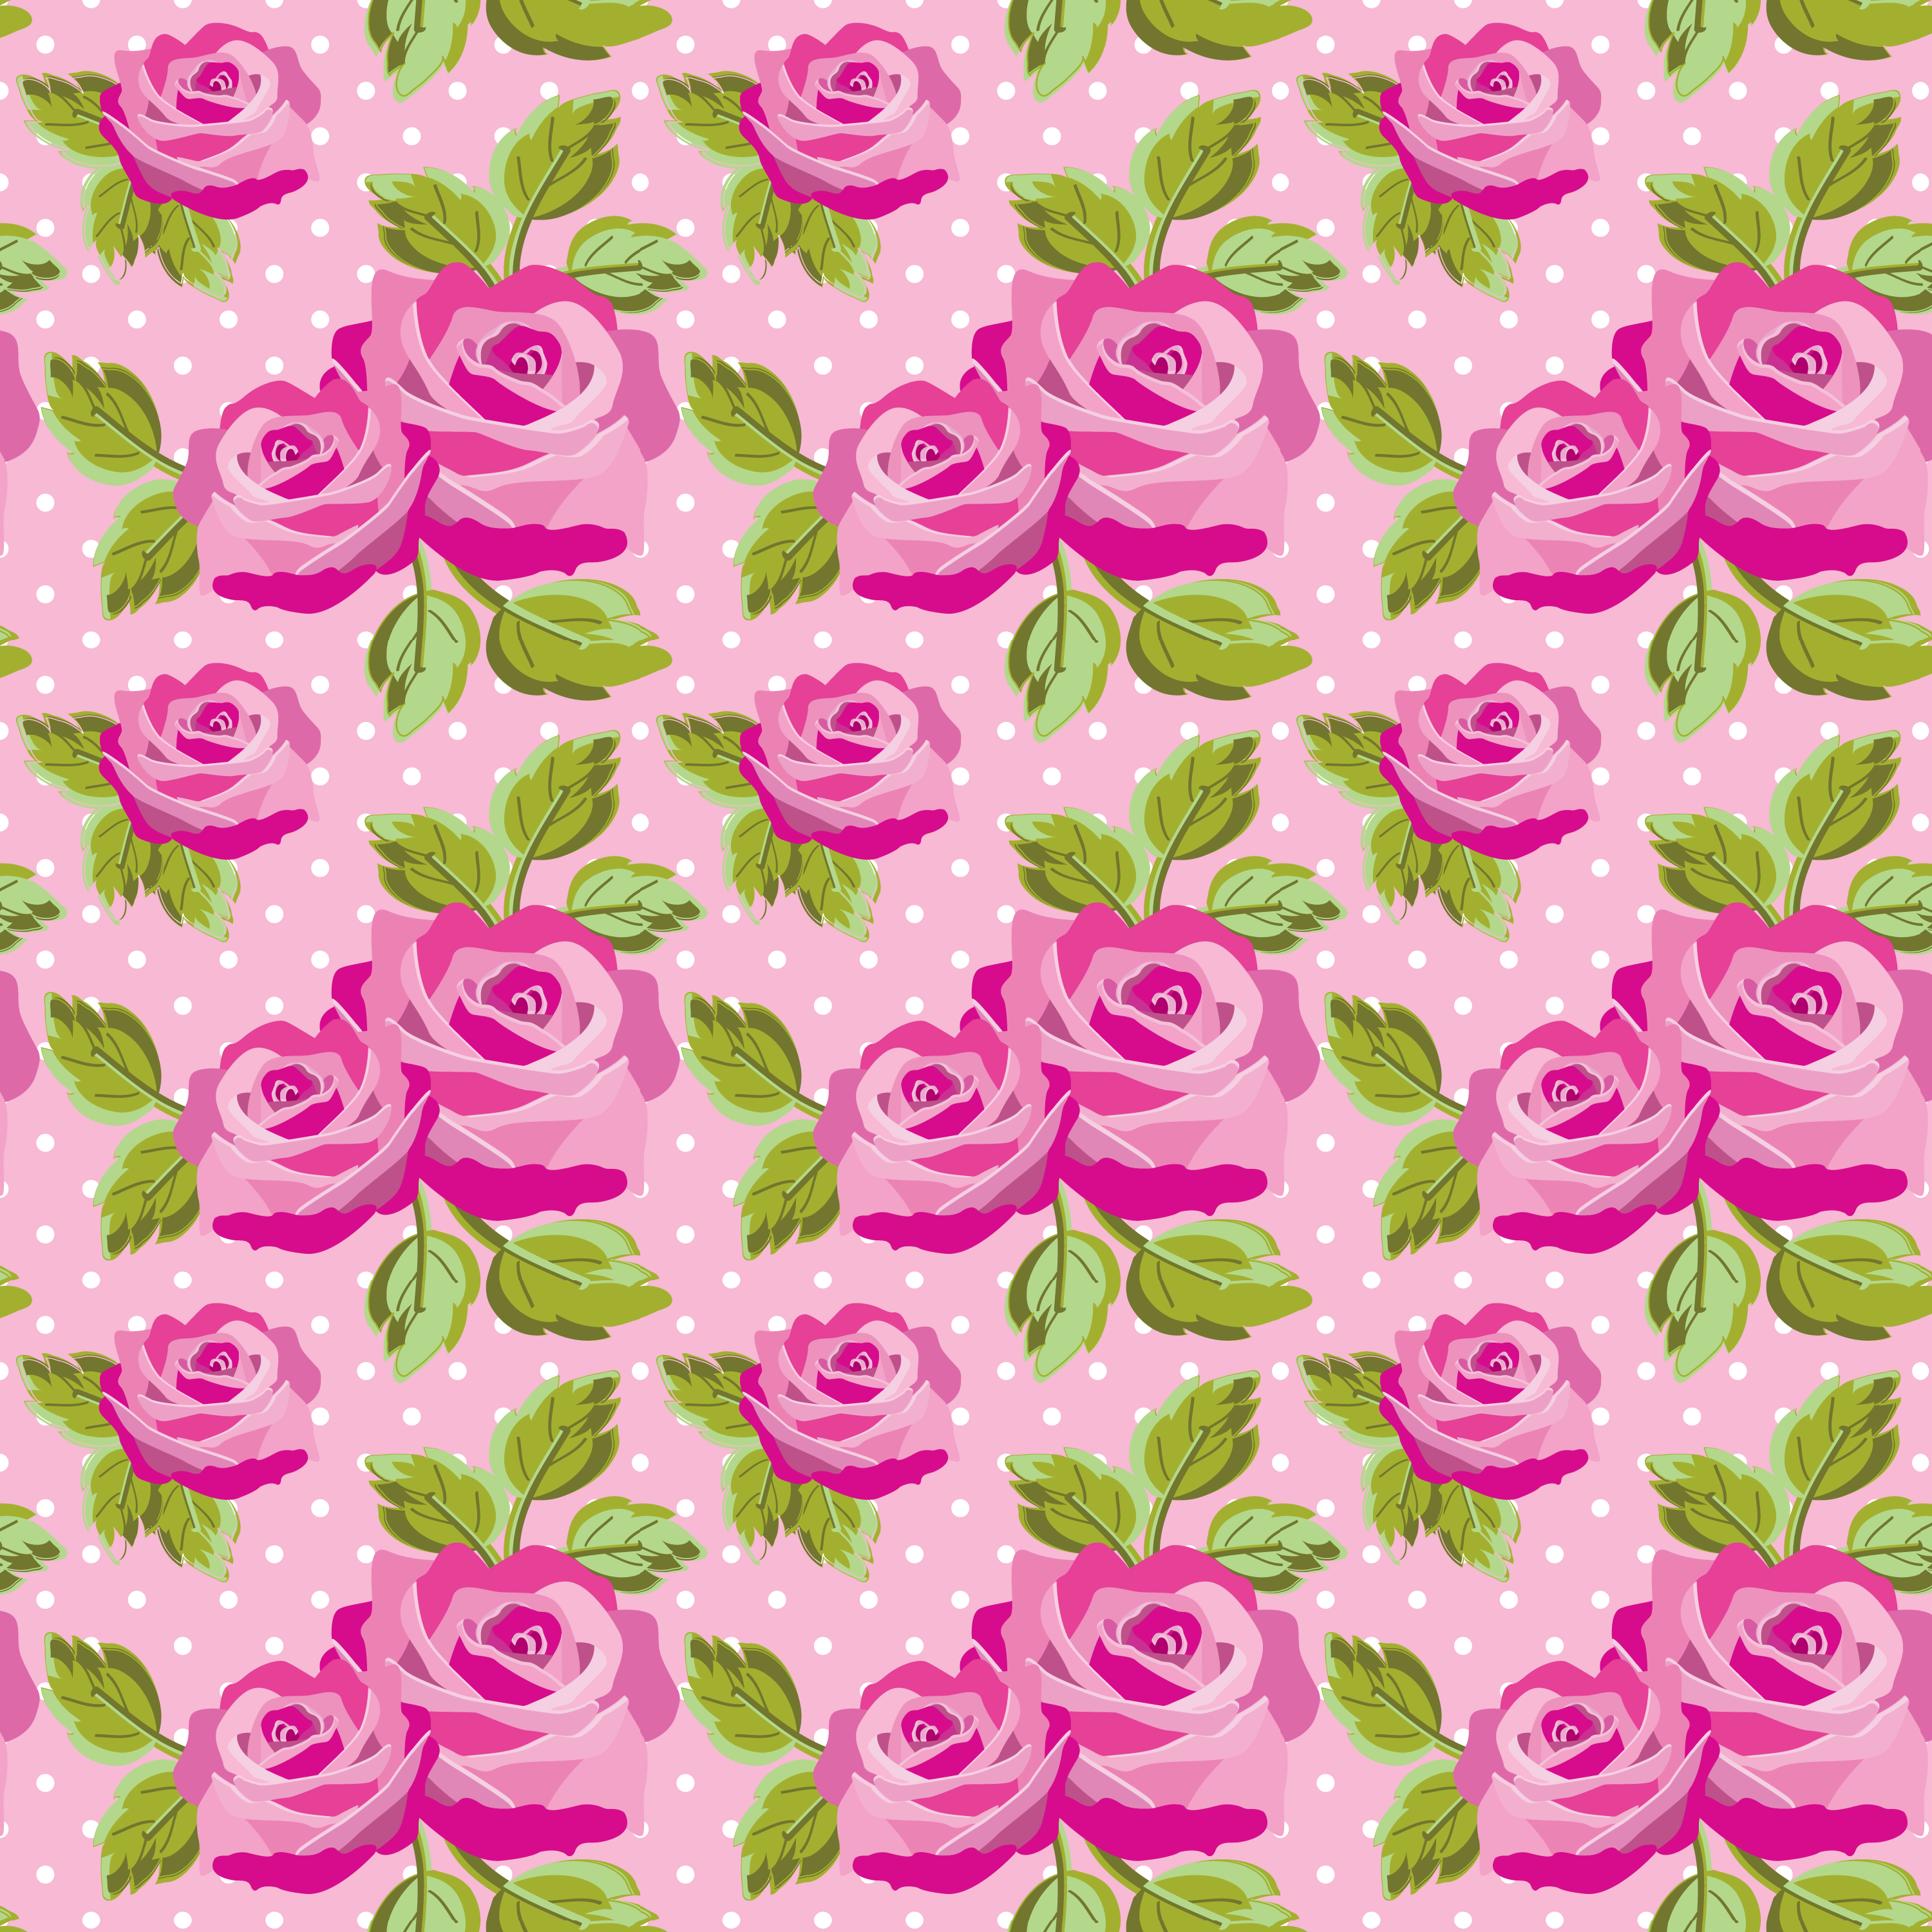 Free 3000x3000 Pink Rose Floral Wallpaper Background Vector High